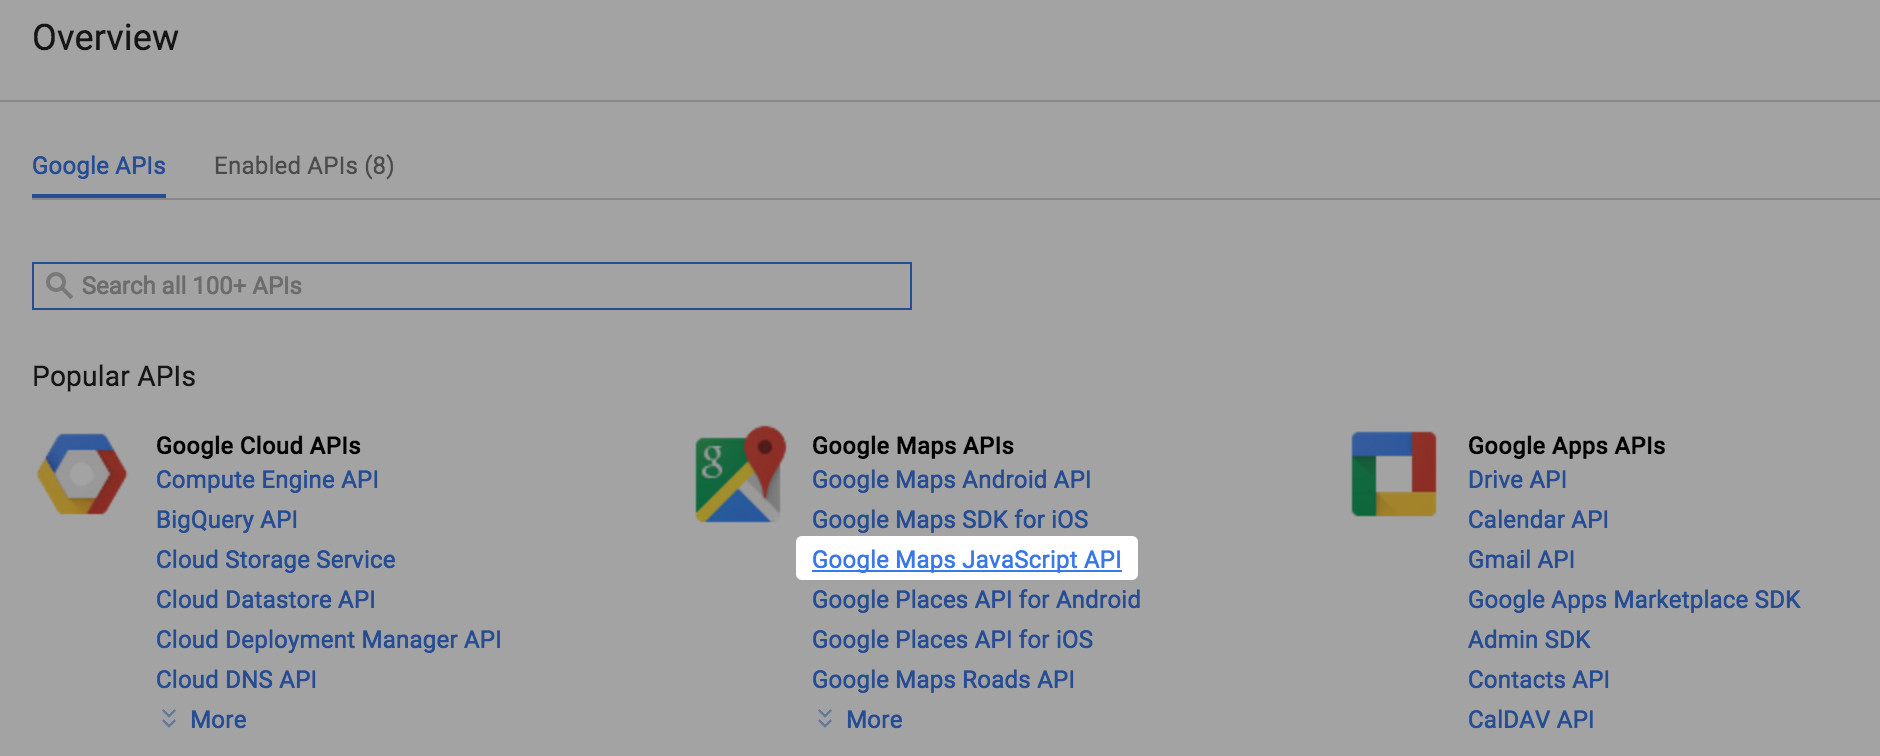 Click on Google Maps Javascript API